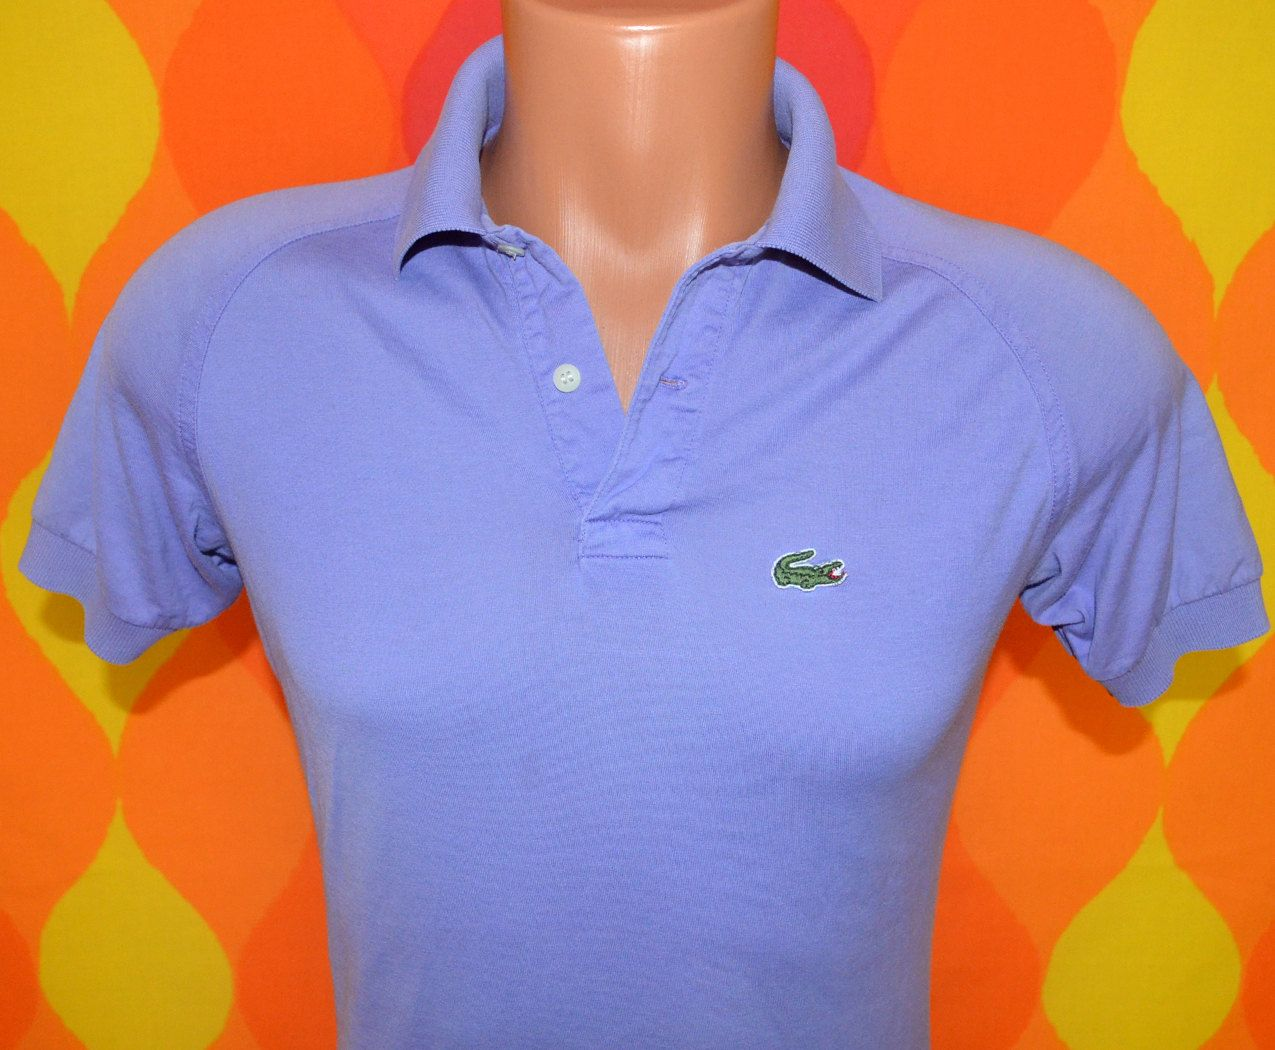 Vintage 70s golf shirt izod lacoste polo tennis small for Lacoste shirts with big alligator